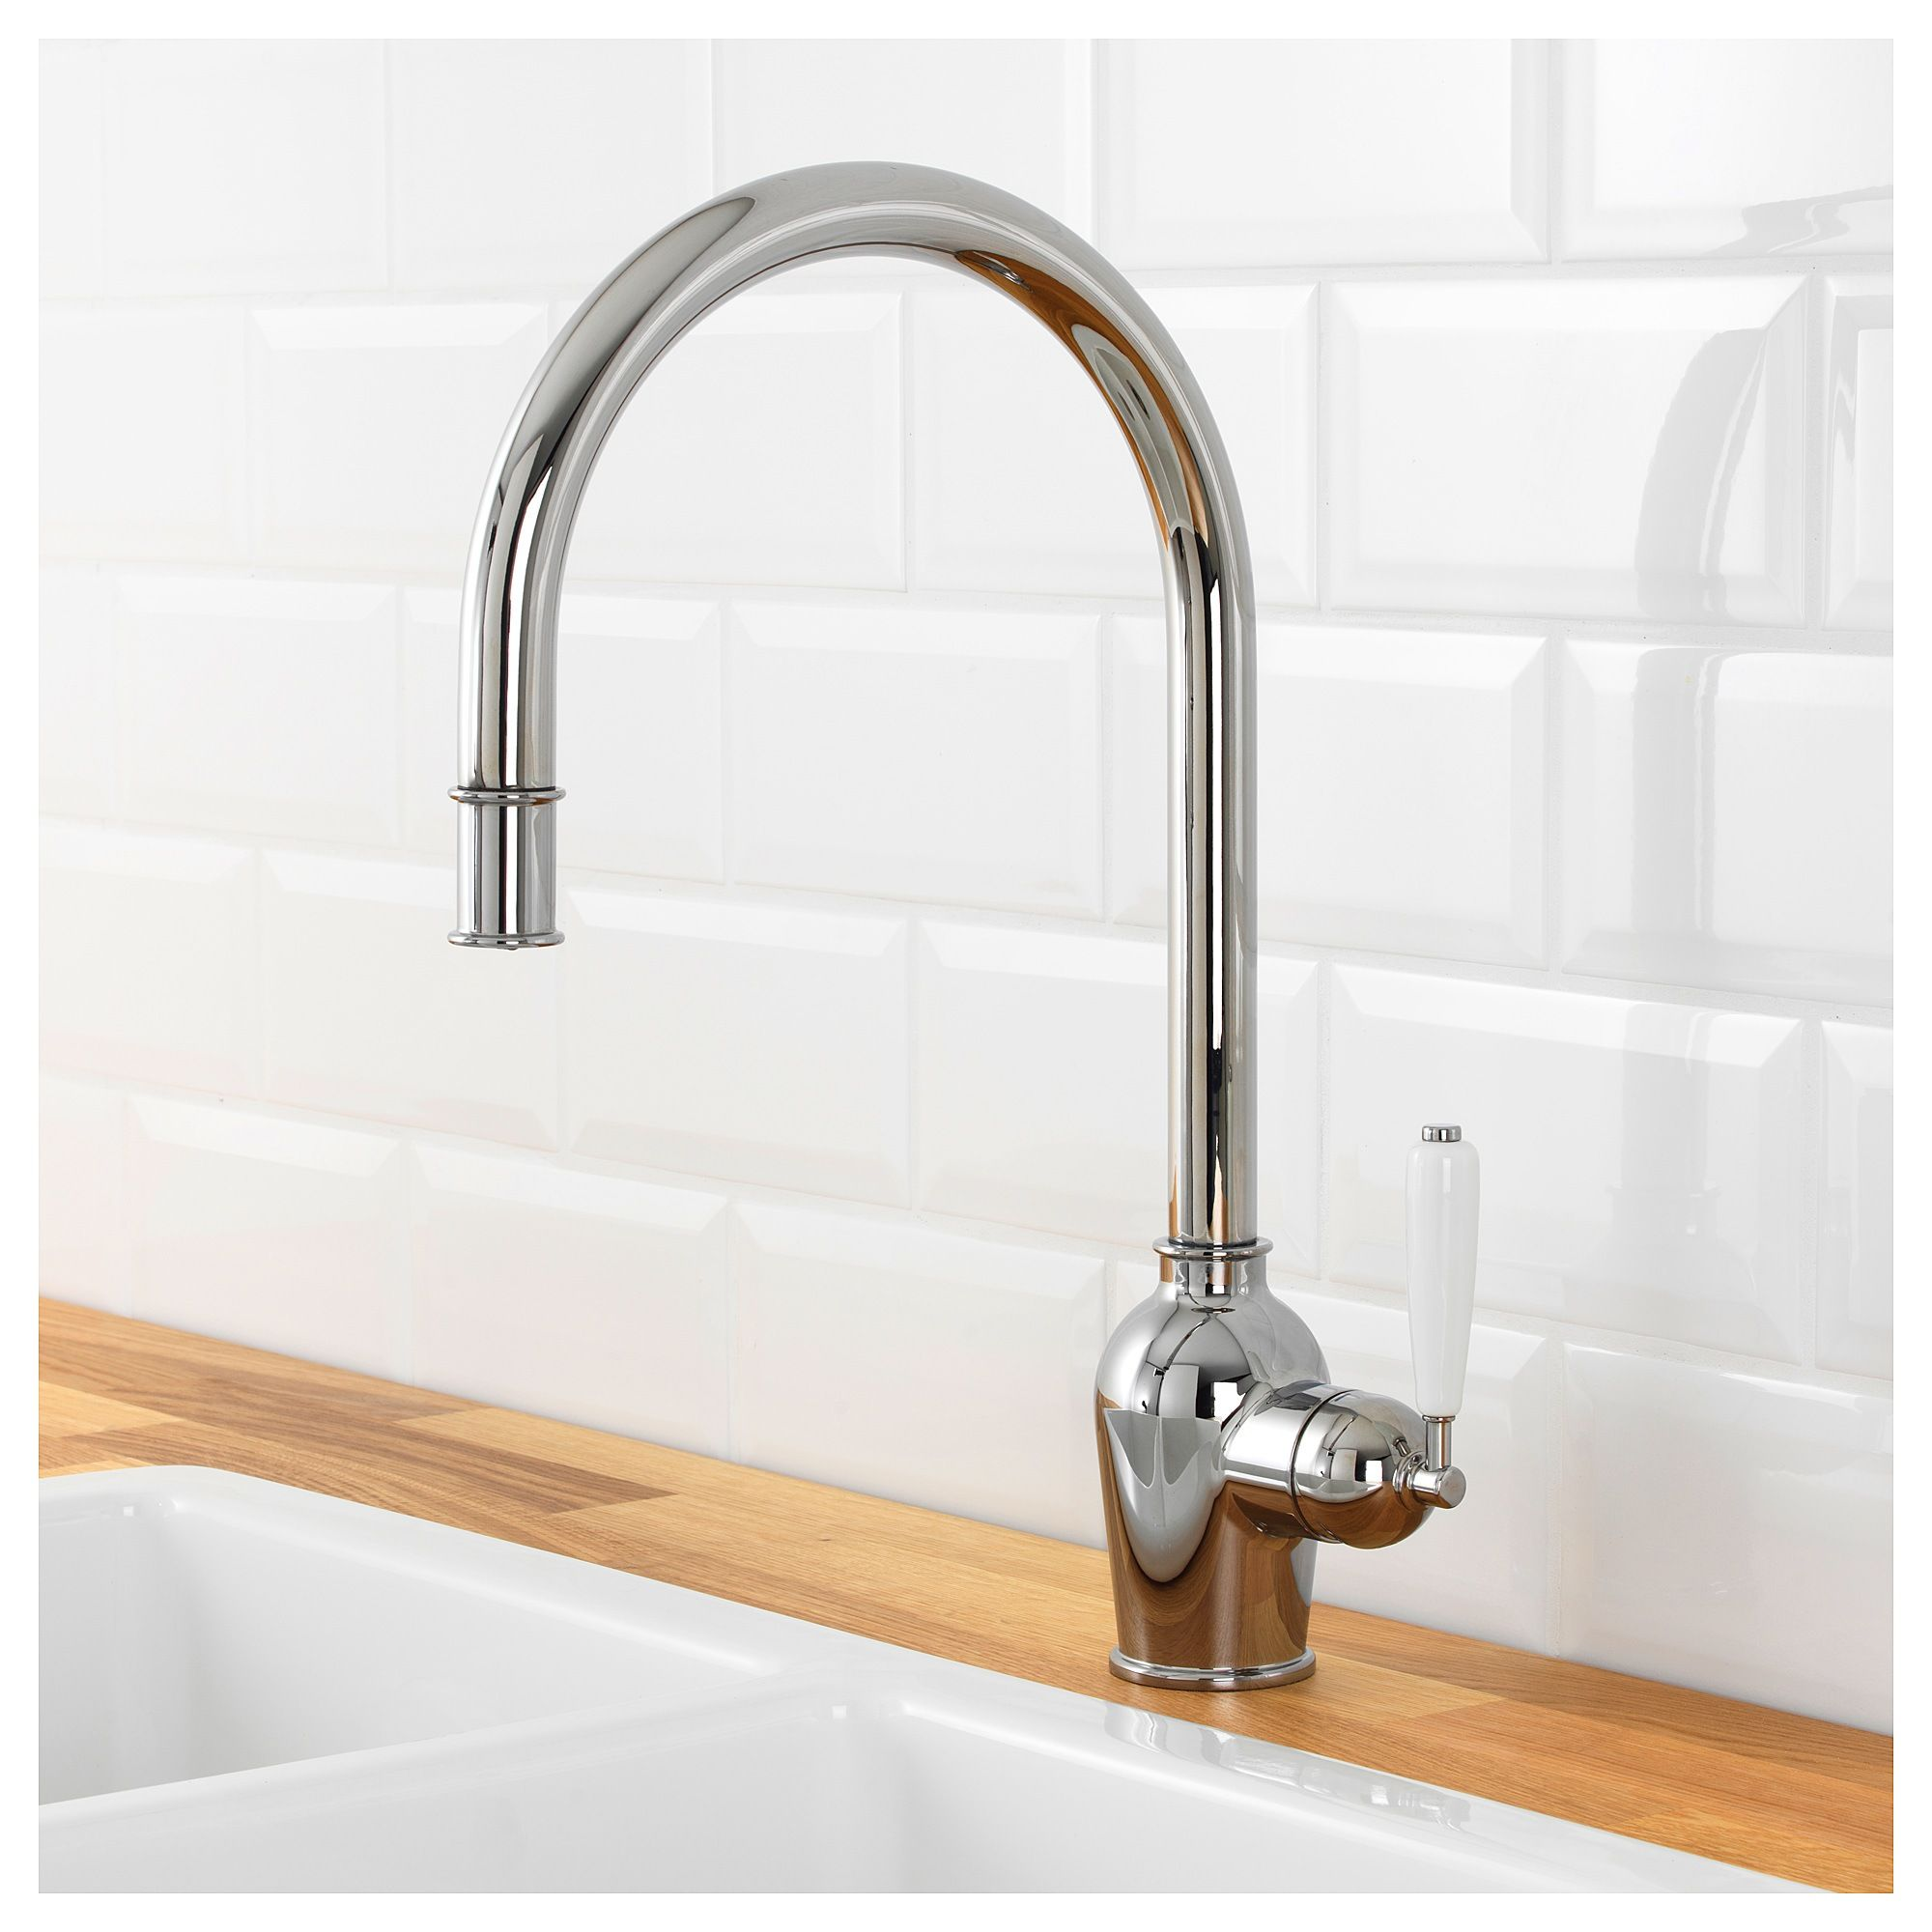 Ikea Küchenarmatur InsjÖn Kitchen Faucet With Pull Out Spout Chrome Plated The